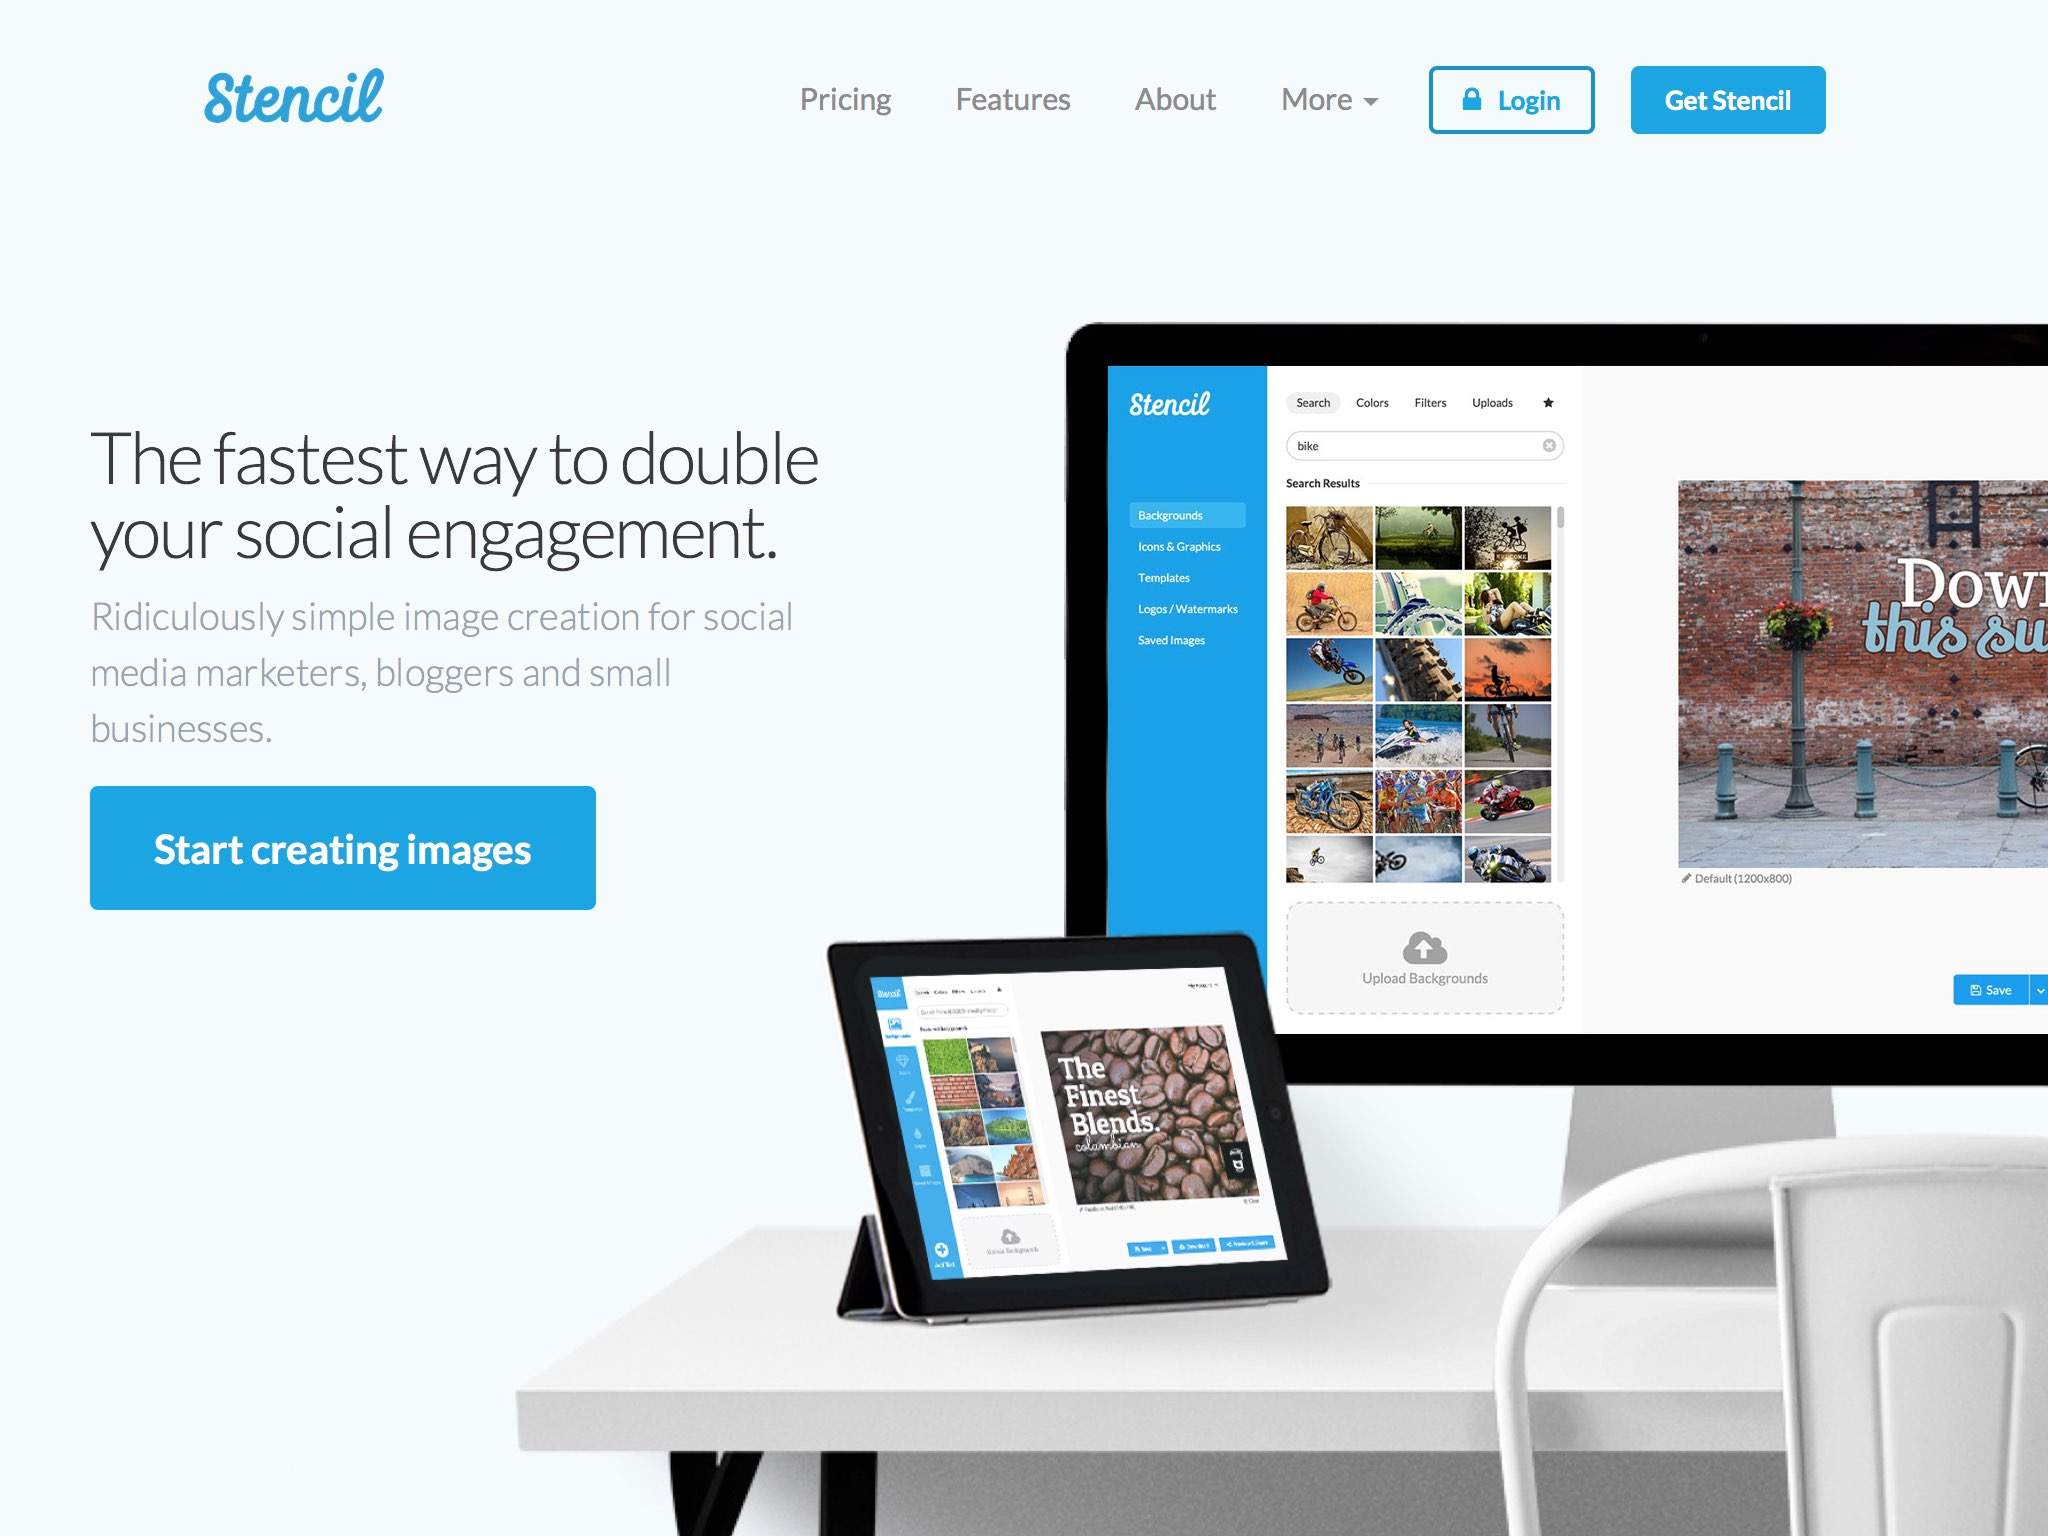 Ridiculously simple image creation for social media marketers, bloggers and small businesses.